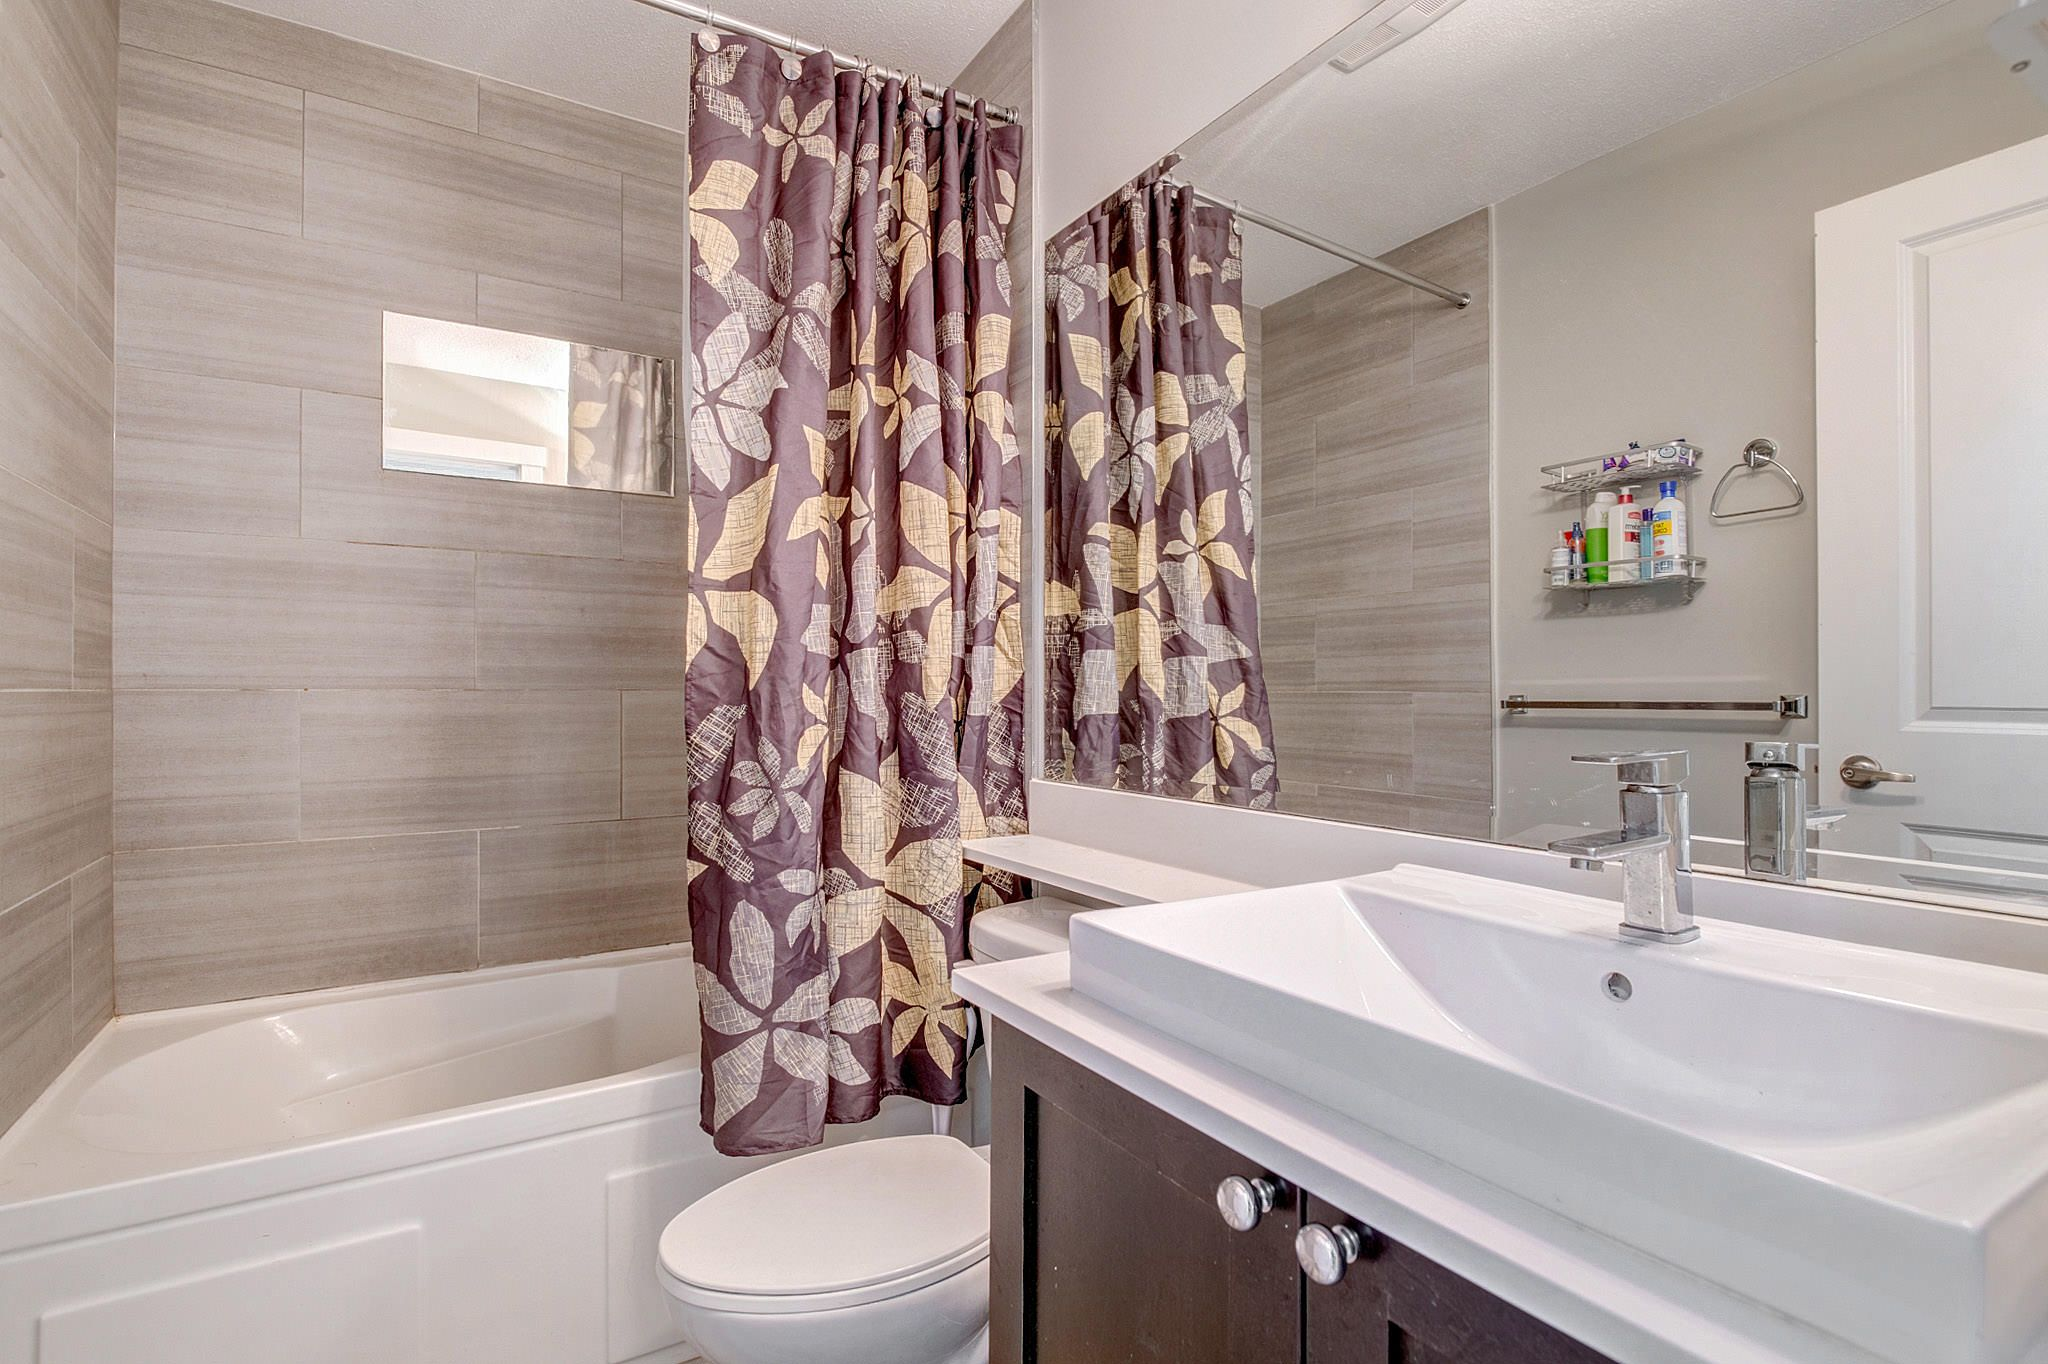 Photo 20: Photos: 10 19742 55A Street in Langley: Langley City Townhouse for sale : MLS®# R2388093